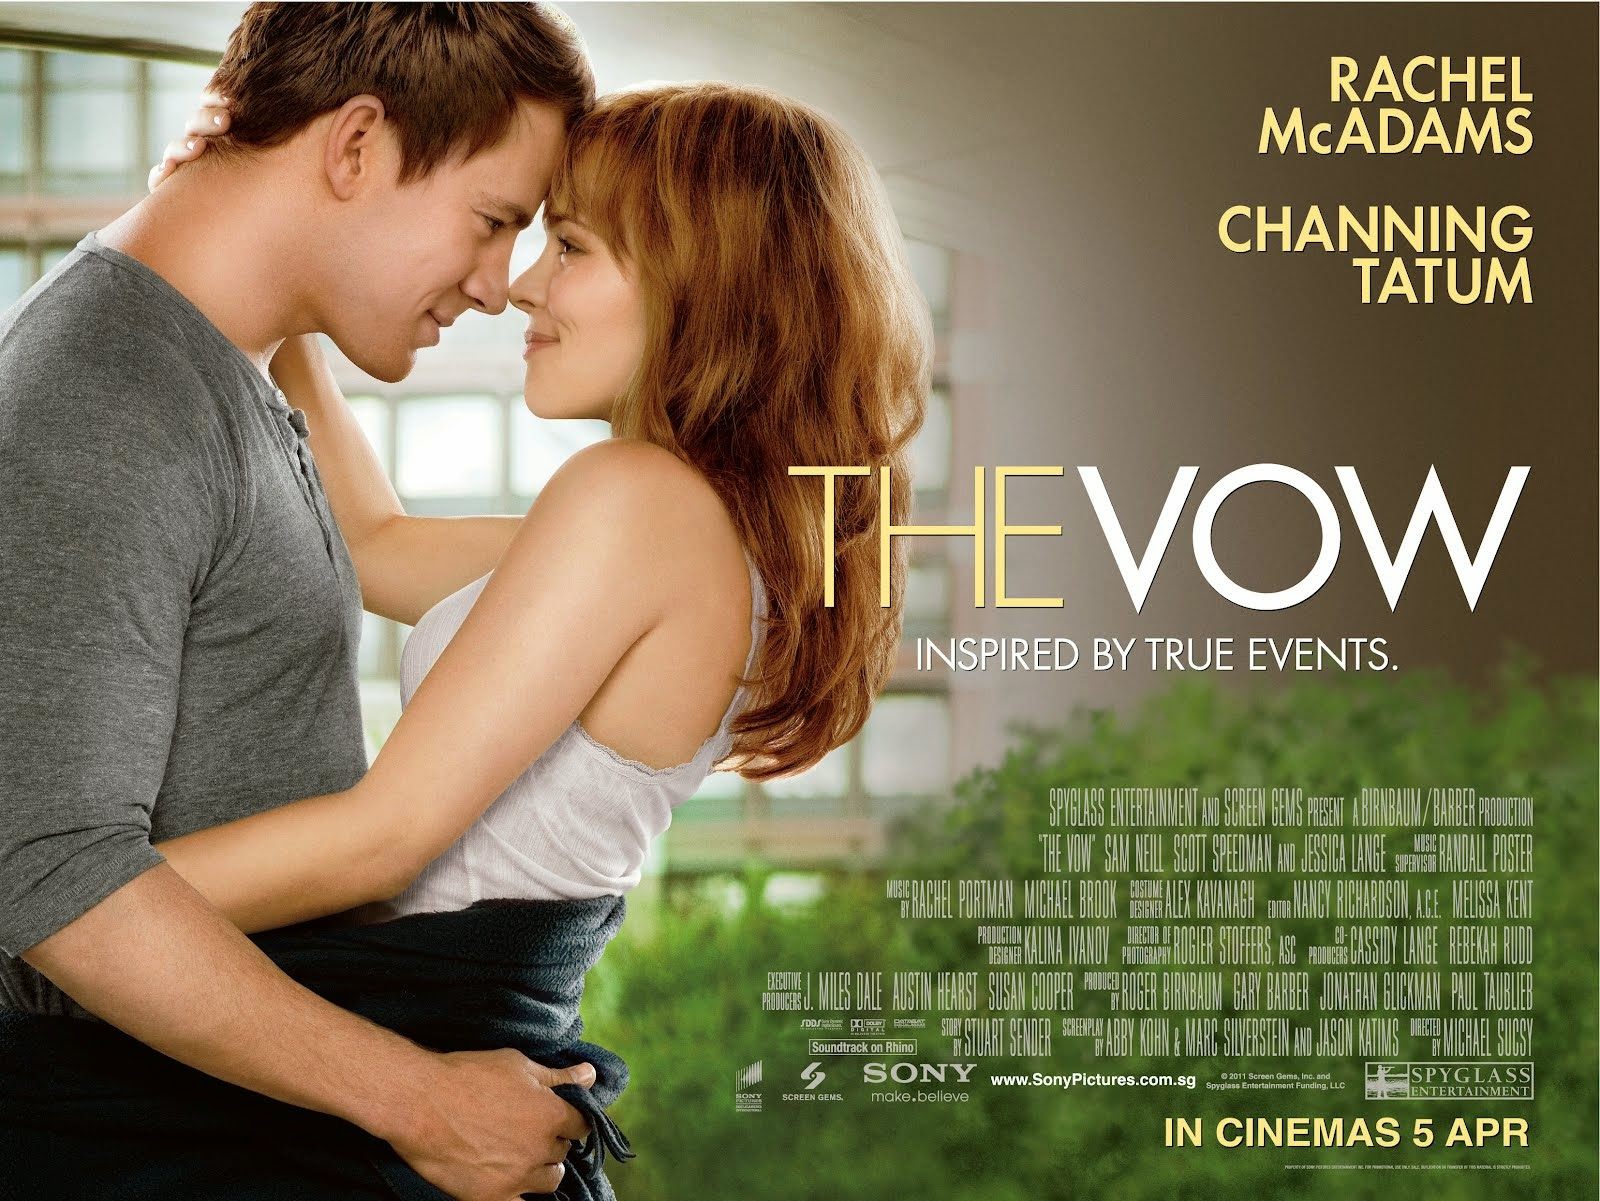 the vow movie english subtitles free download